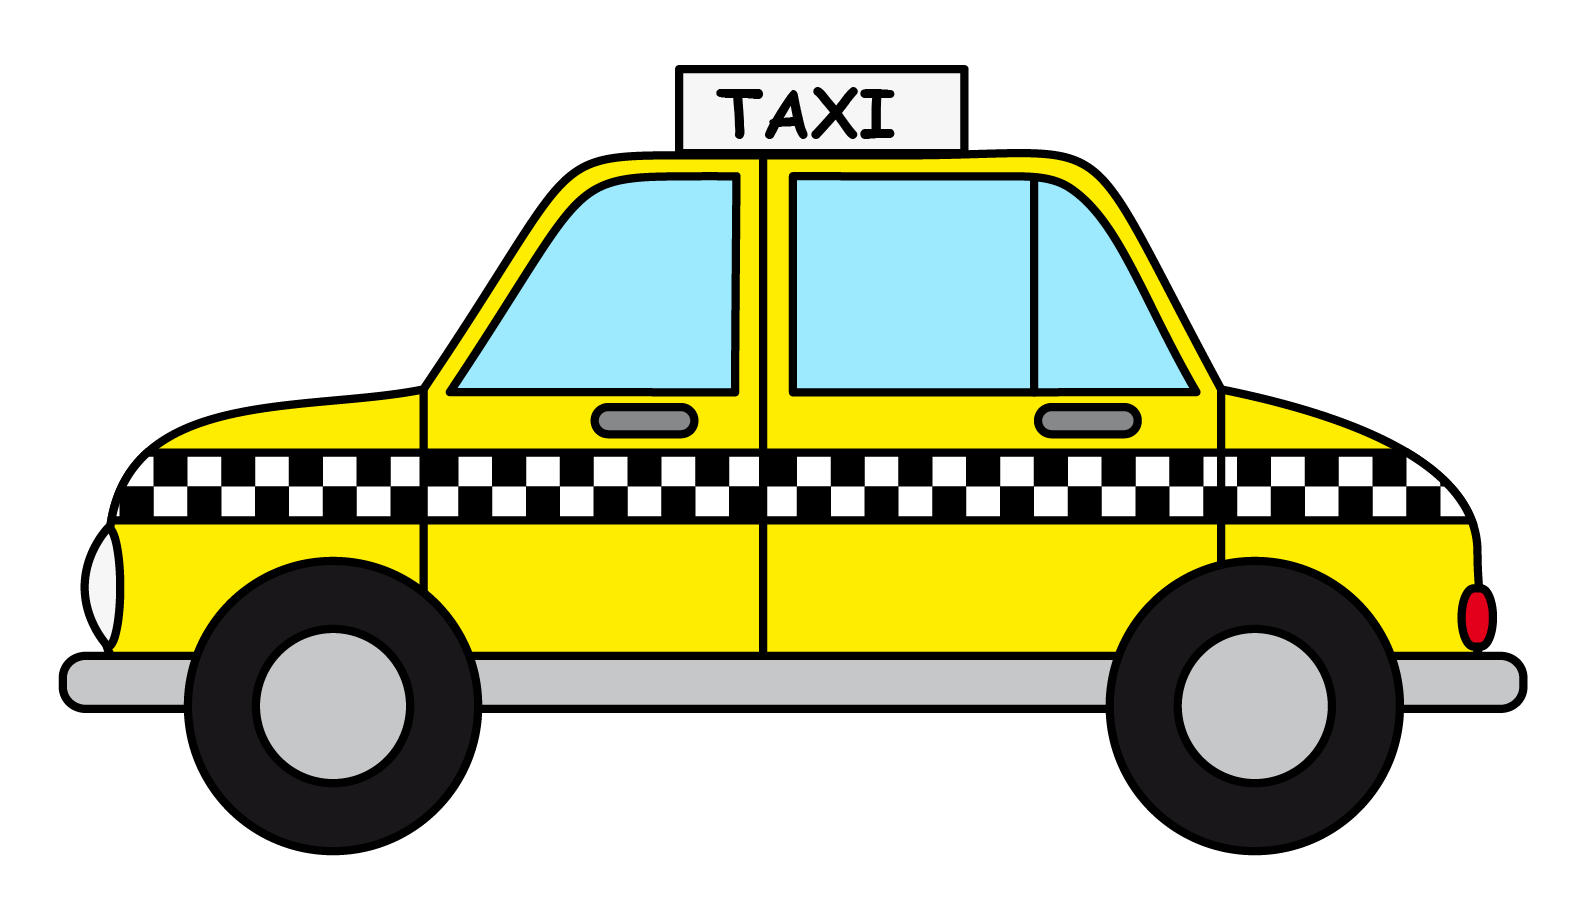 Taxi clipart simple Art Taxi to Public Cab